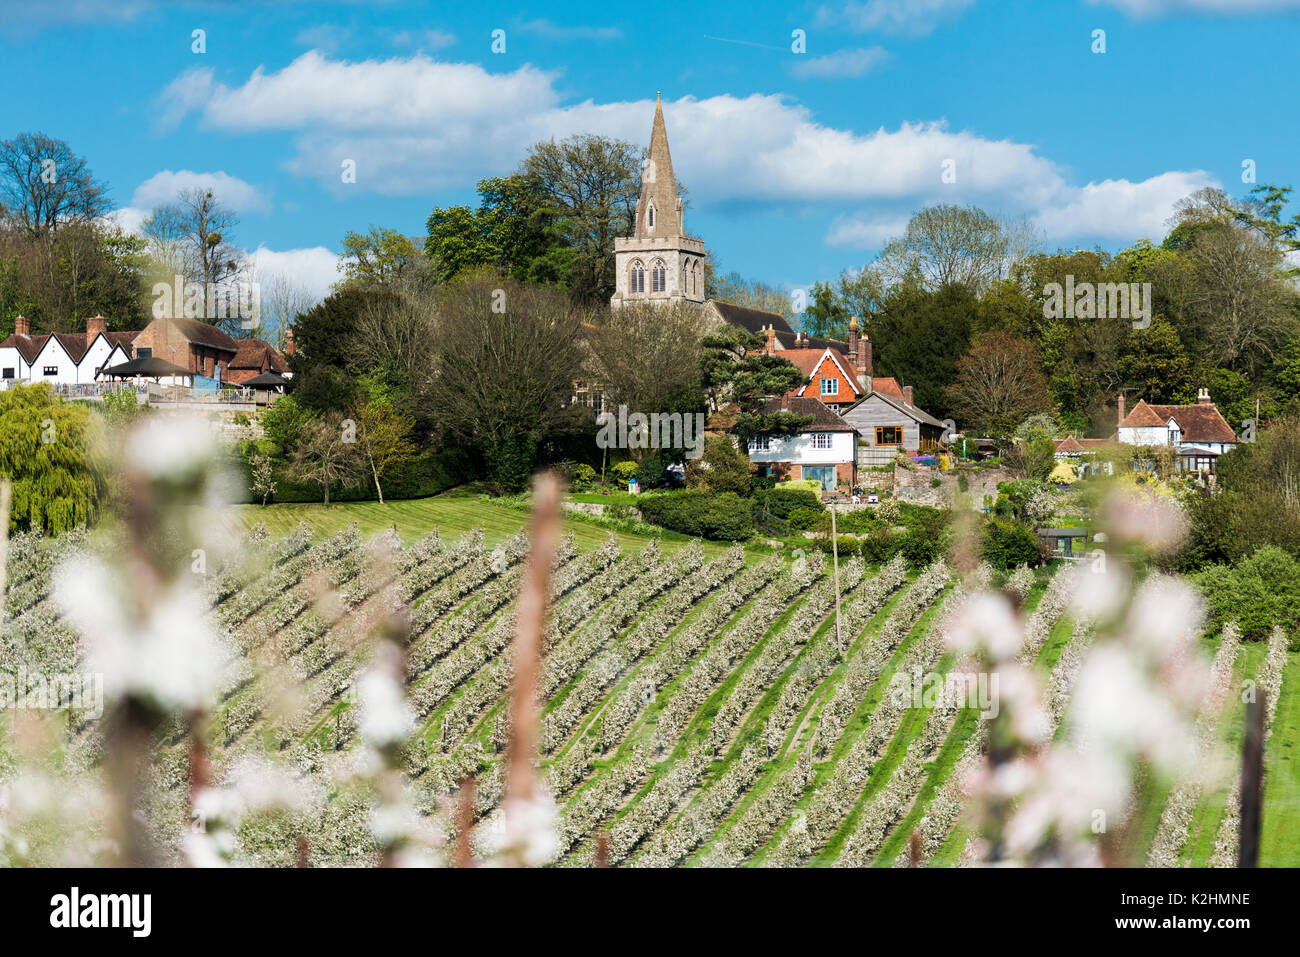 Linton Village just outside on Maidstone in Kent, England. St Nicholas Church being the key feature of the village - Stock Image